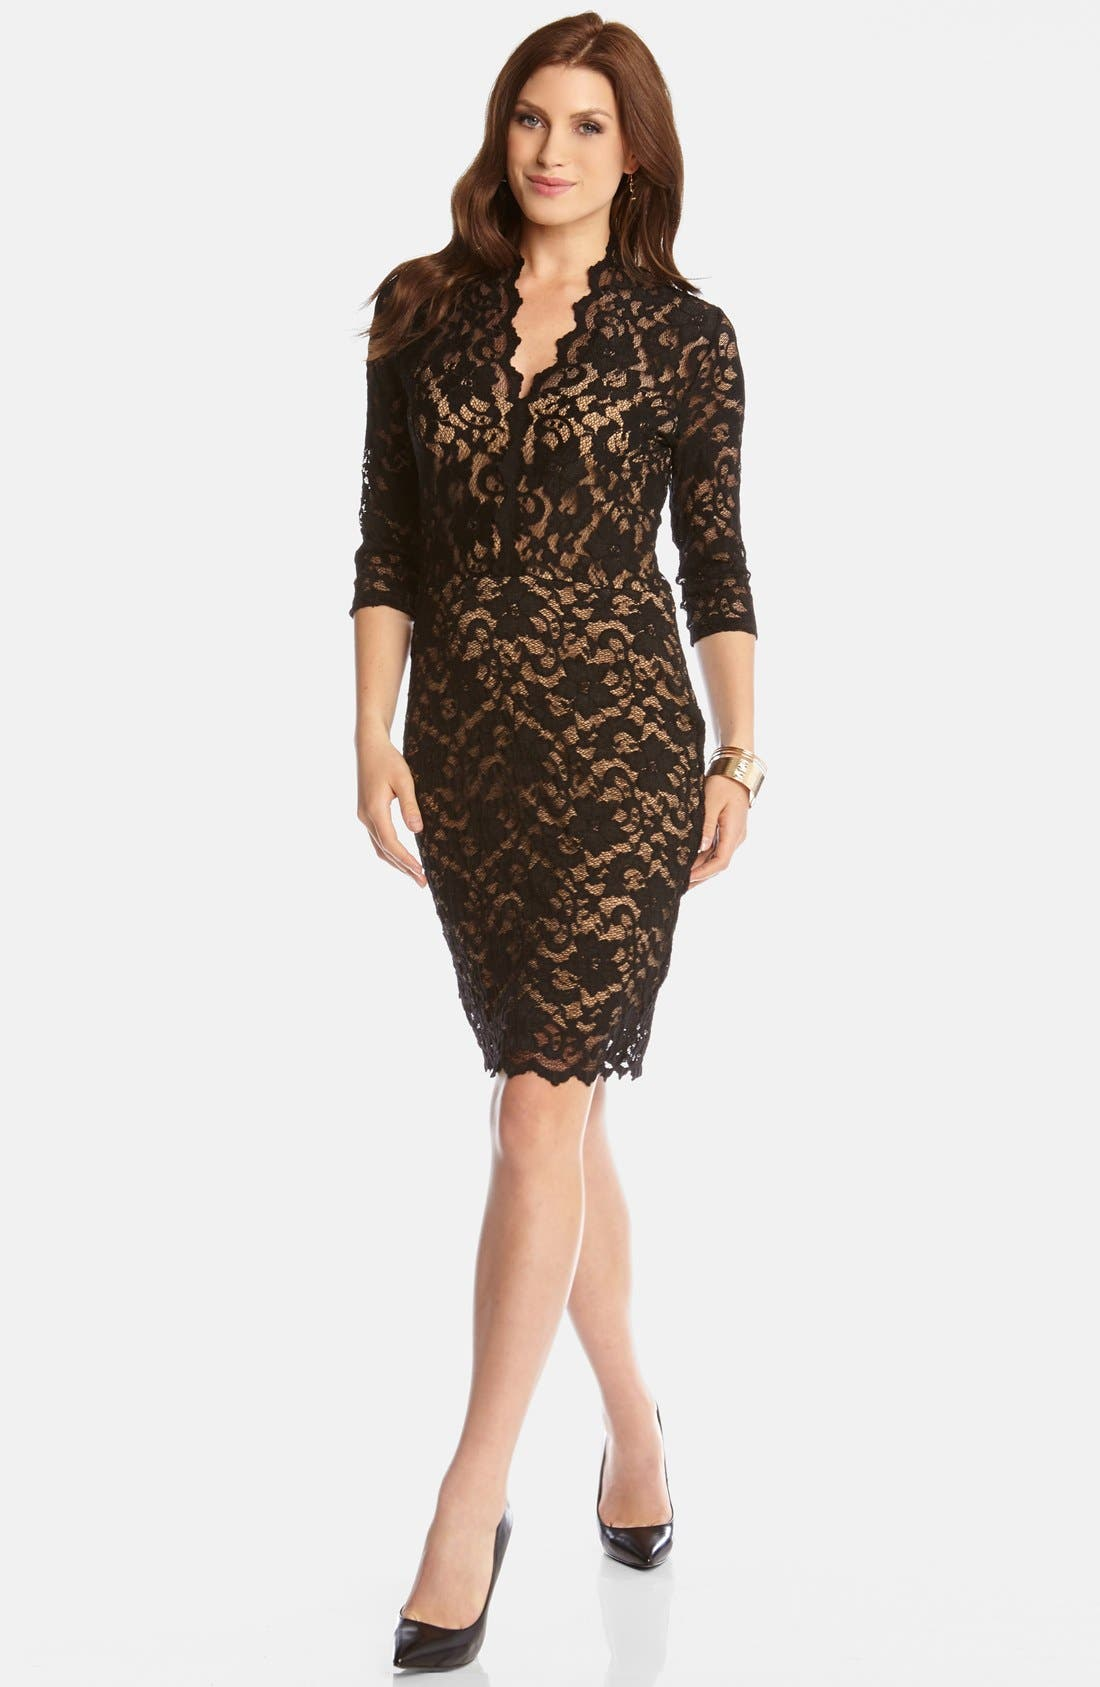 KAREN KANE, Scalloped Lace Sheath Dress, Main thumbnail 1, color, BLACK/ NUDE